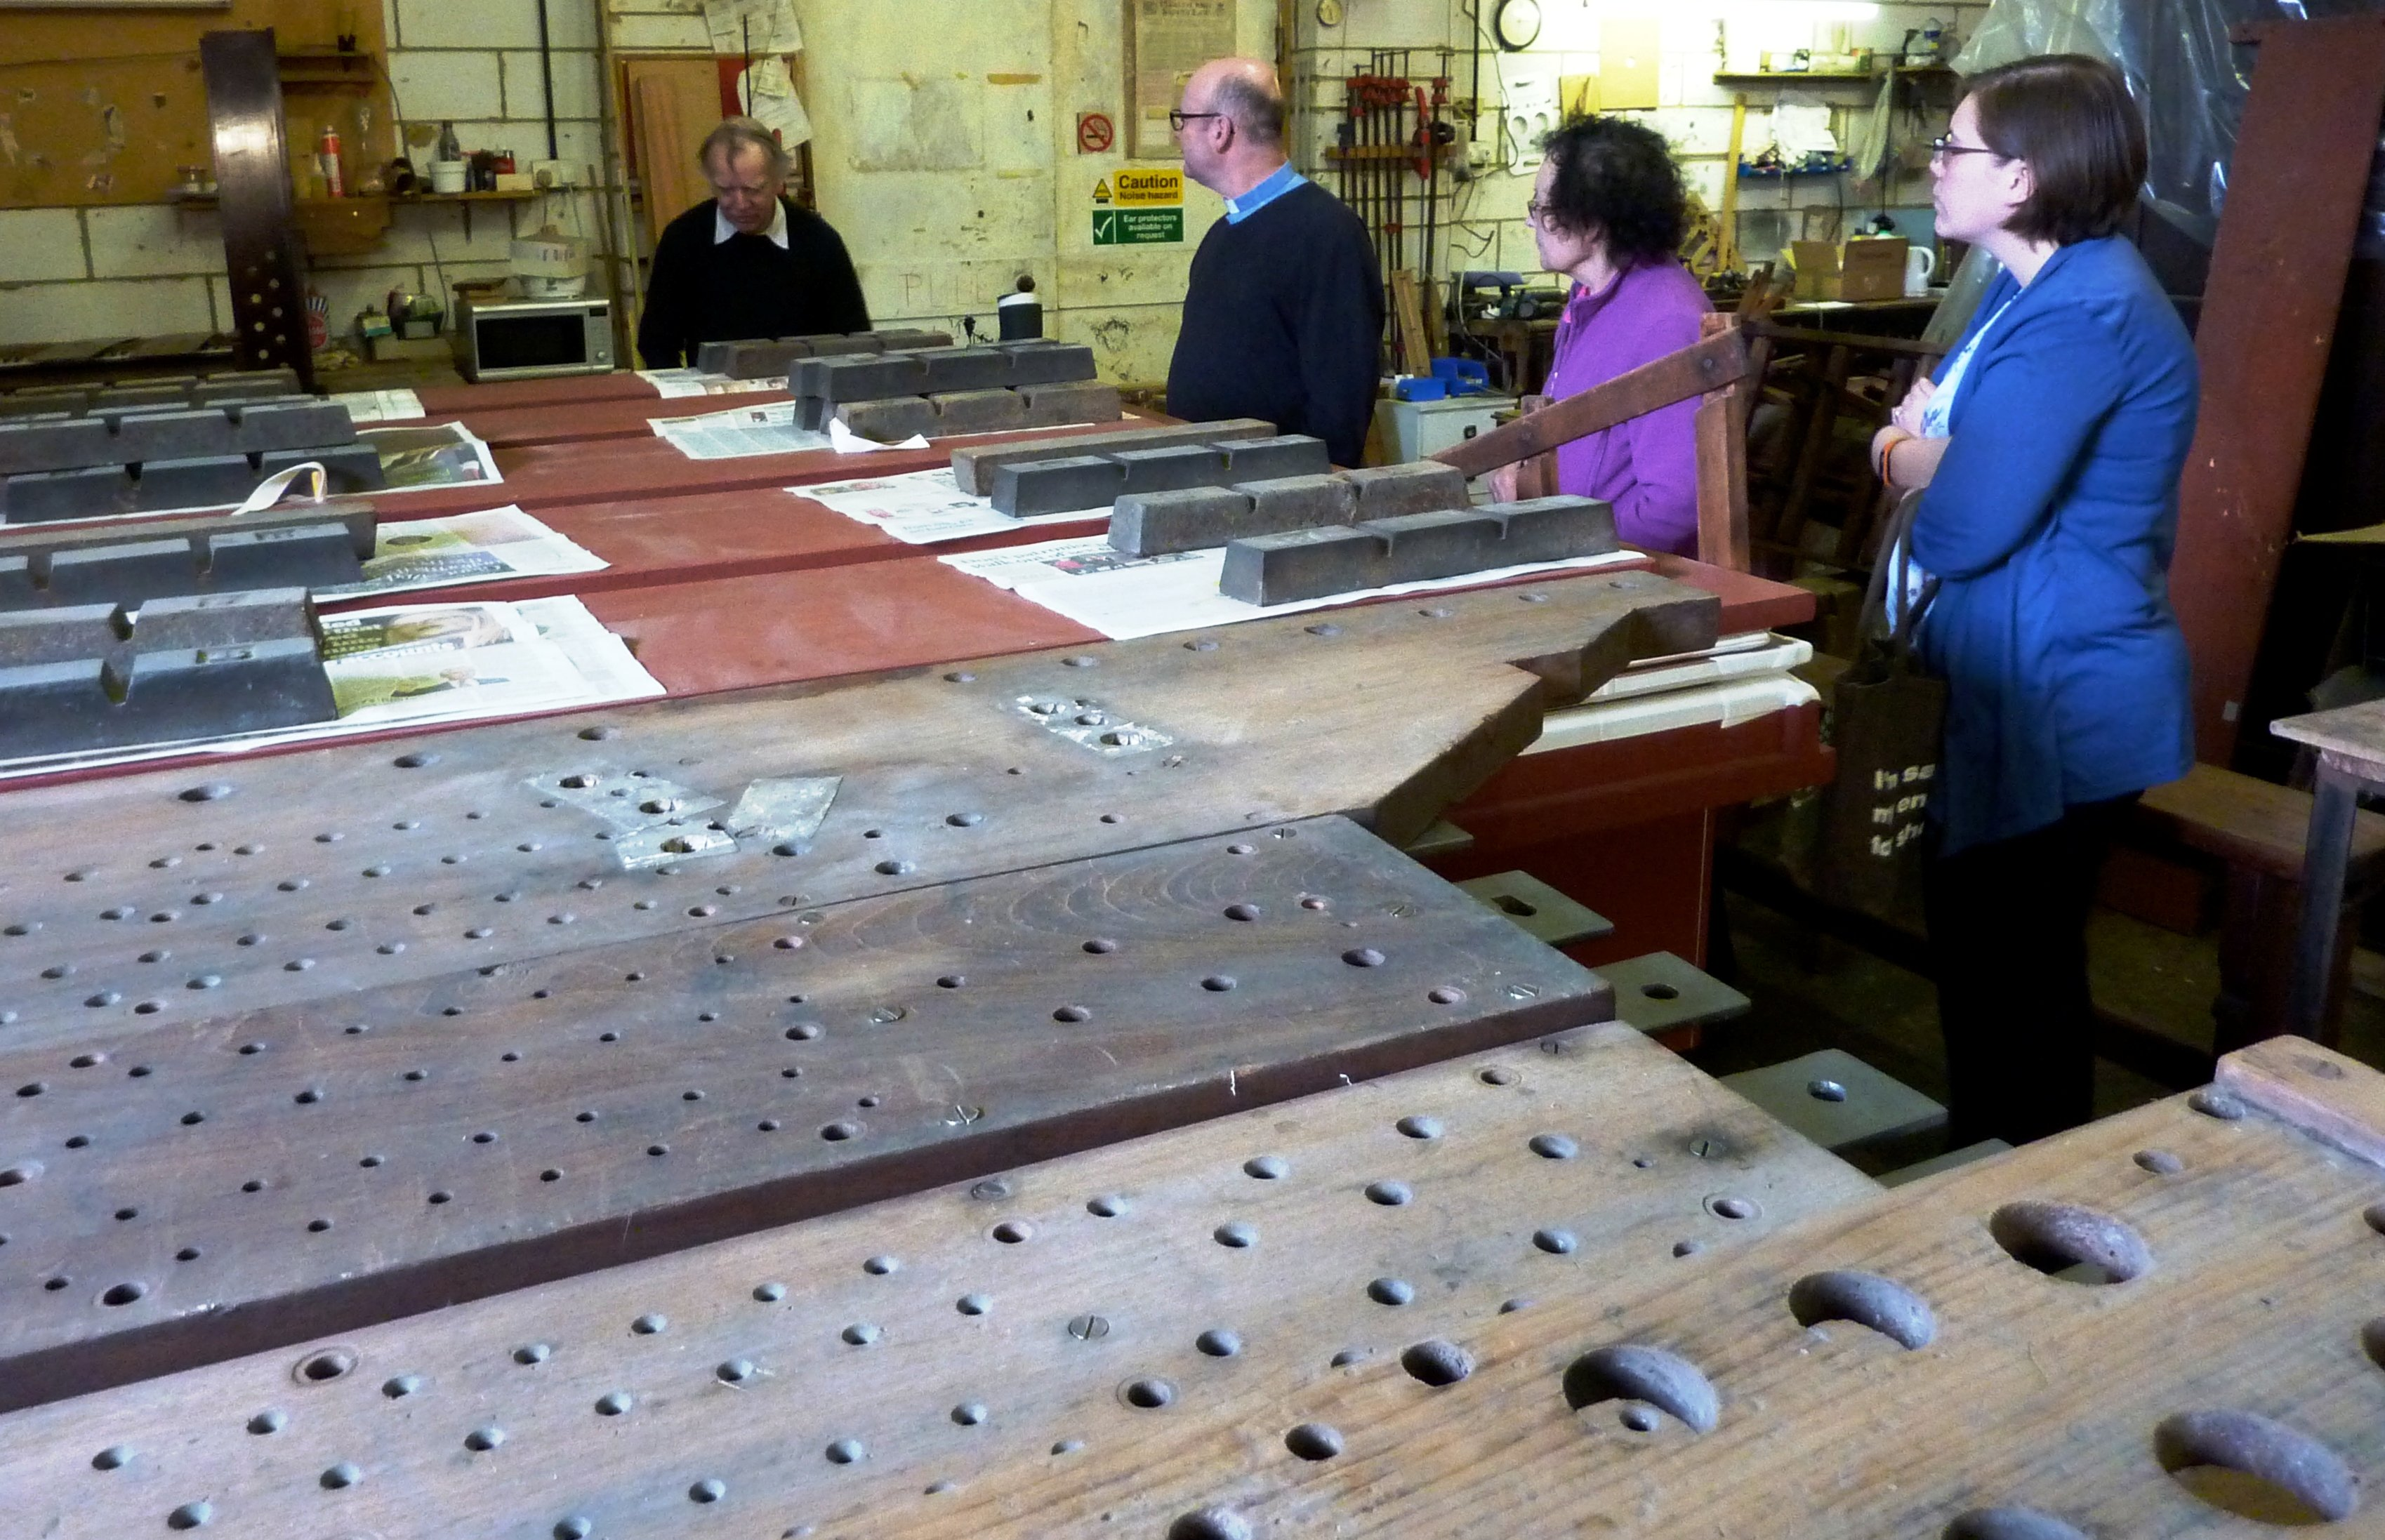 Workshop visit bellows - with people